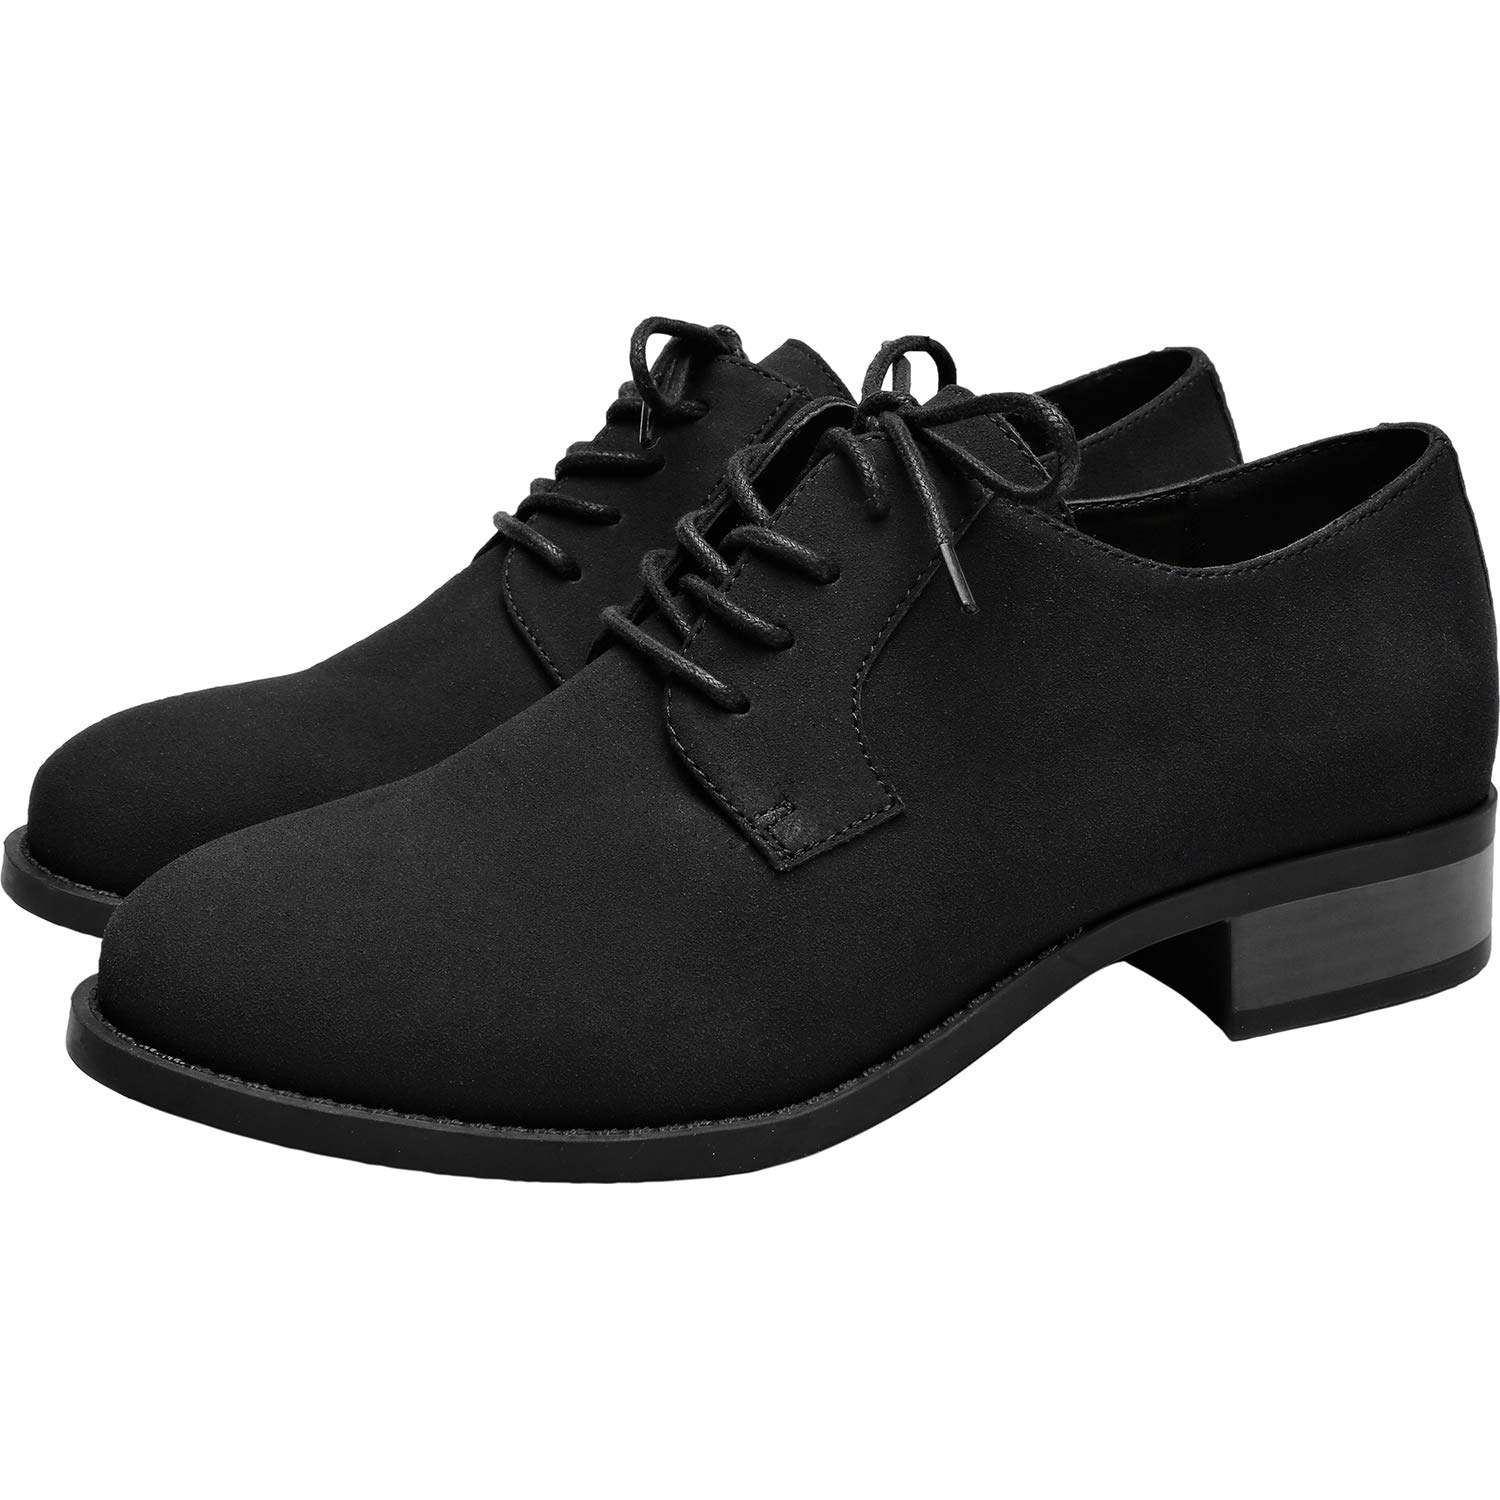 1930s Style Shoes – Art Deco Shoes Womens Wide Width Oxfords - Classic Flat Lace Up Urban Formal Shoes. $47.99 AT vintagedancer.com